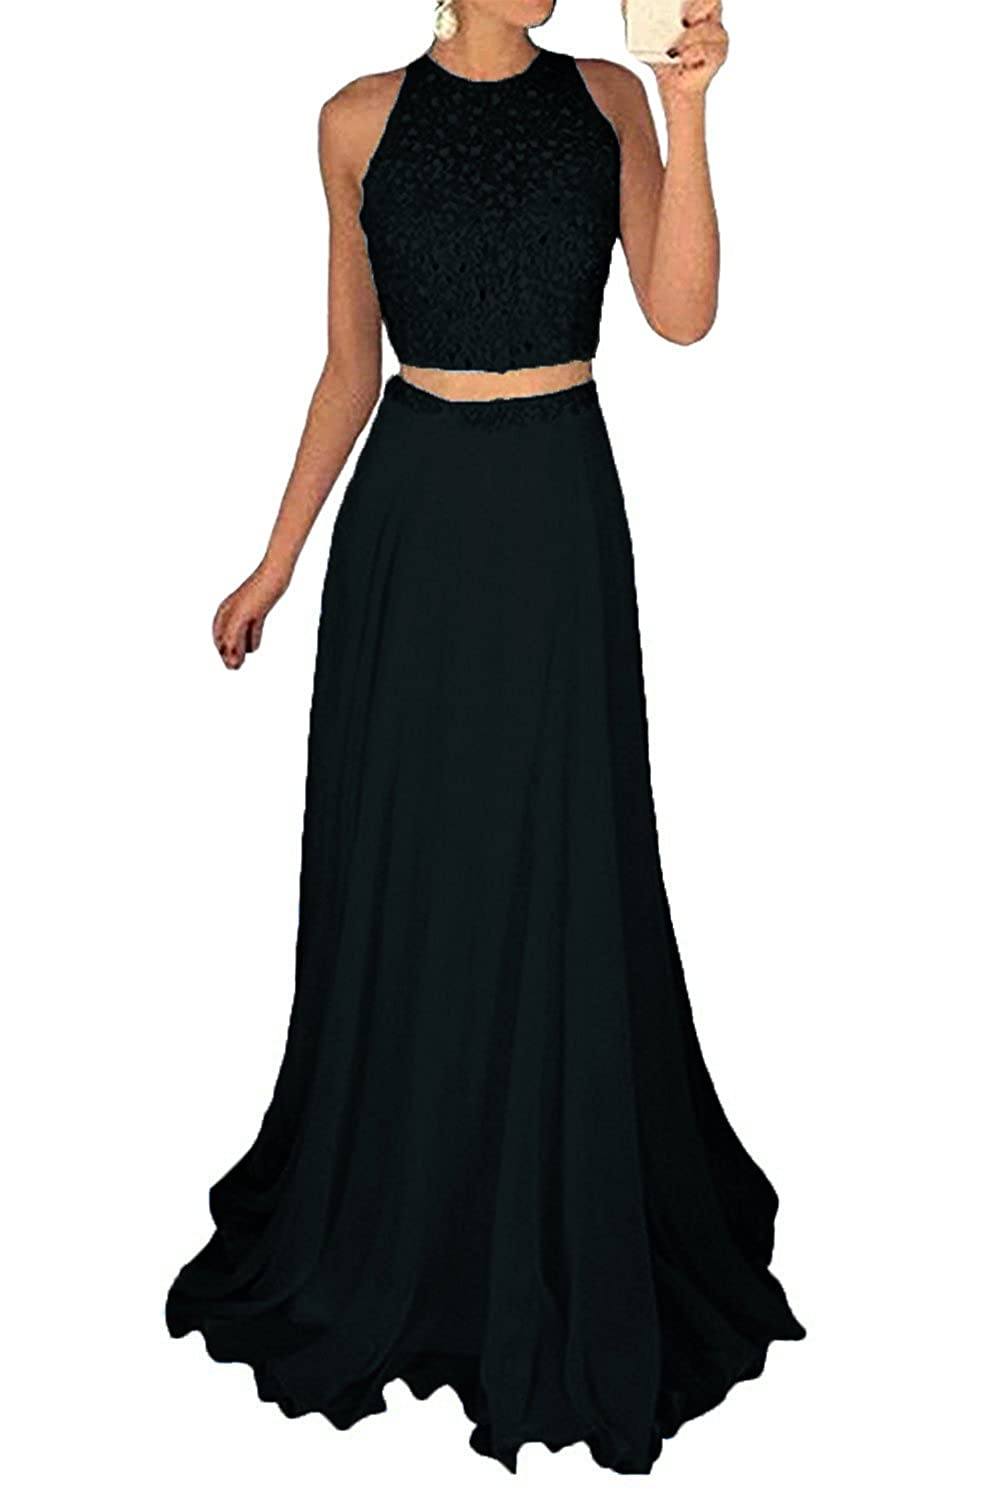 09a48570723 Amazon.com  2 piece prom dress. Amazon s Choice for 2 piece prom dress. Dydsz  Women s Prom Dress Short Homecoming Party Dresses 2 Piece Beaded Cocktail  Gown ...